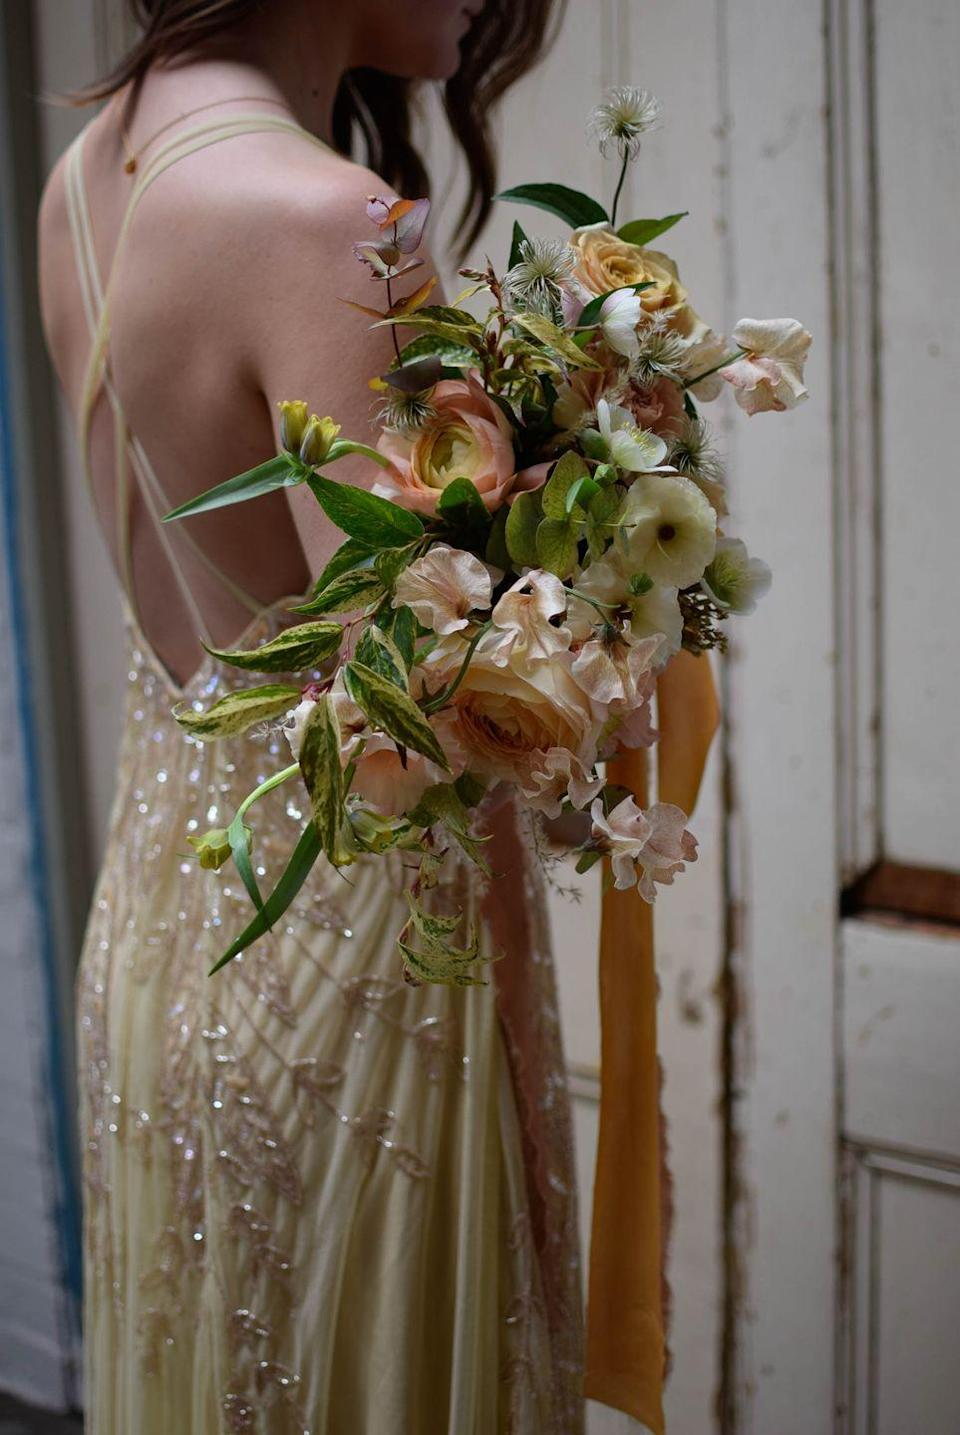 """<p>Floral delivery service Petalon keep things simple when it comes to wedding flowers, offering just two different types of service. </p><p>The first is a wedding package including beautiful bouquets, buttonholes and table flowers which a bride or groom selects from a menu, choosing from one of four colour palettes. The second is a bespoke design, whether it be for flower arches, flower clouds or installations, which includes a one-to-one chat with its experts.</p><p>Oh, and did we mention its flowers deliveries are done by bicycle seven days a week, with flowers wrapped in hessian with a small water supply.</p><p>Click <a href=""""http://www.petalon.co.uk"""" rel=""""nofollow noopener"""" target=""""_blank"""" data-ylk=""""slk:here"""" class=""""link rapid-noclick-resp"""">here</a> to find out more.</p>"""